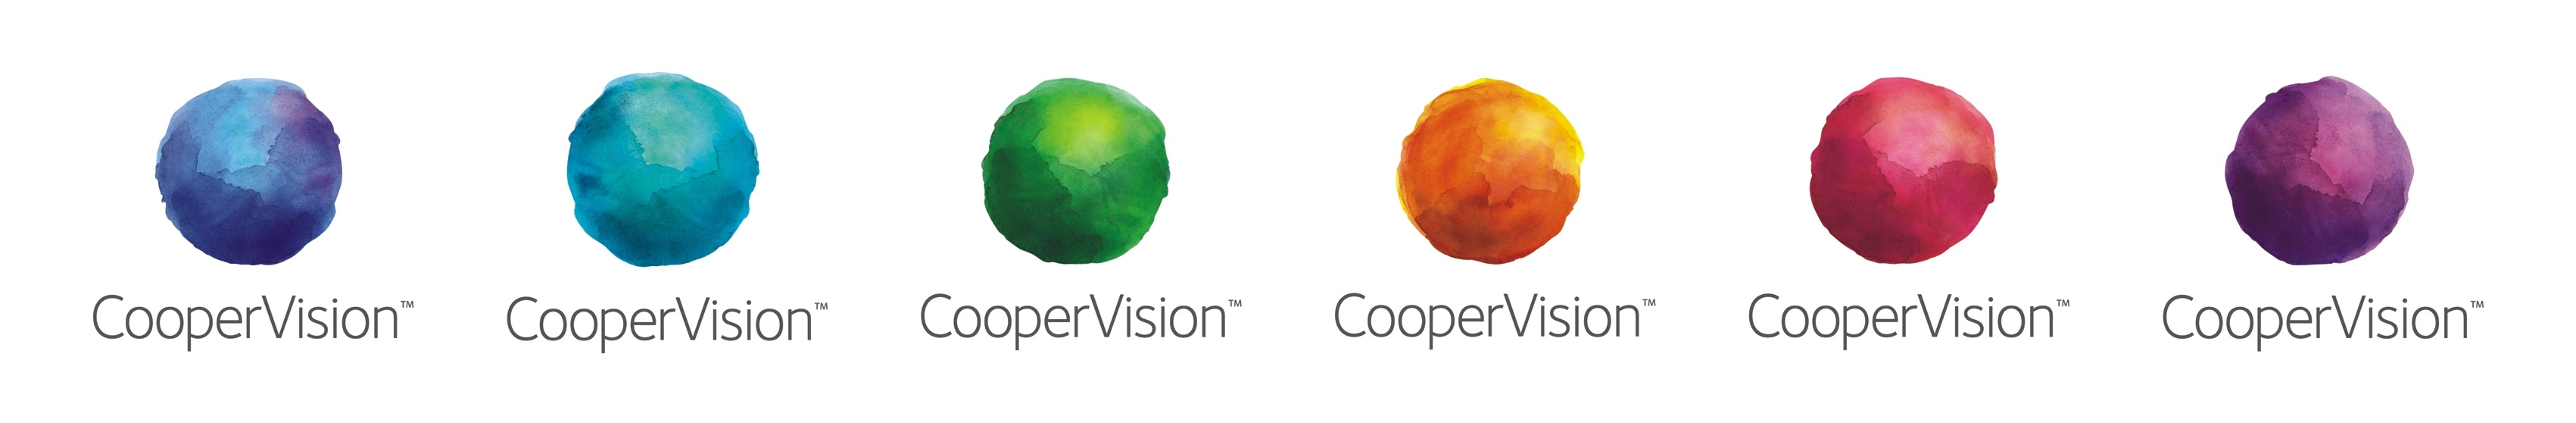 CooperVision_Watermarks_mini-2